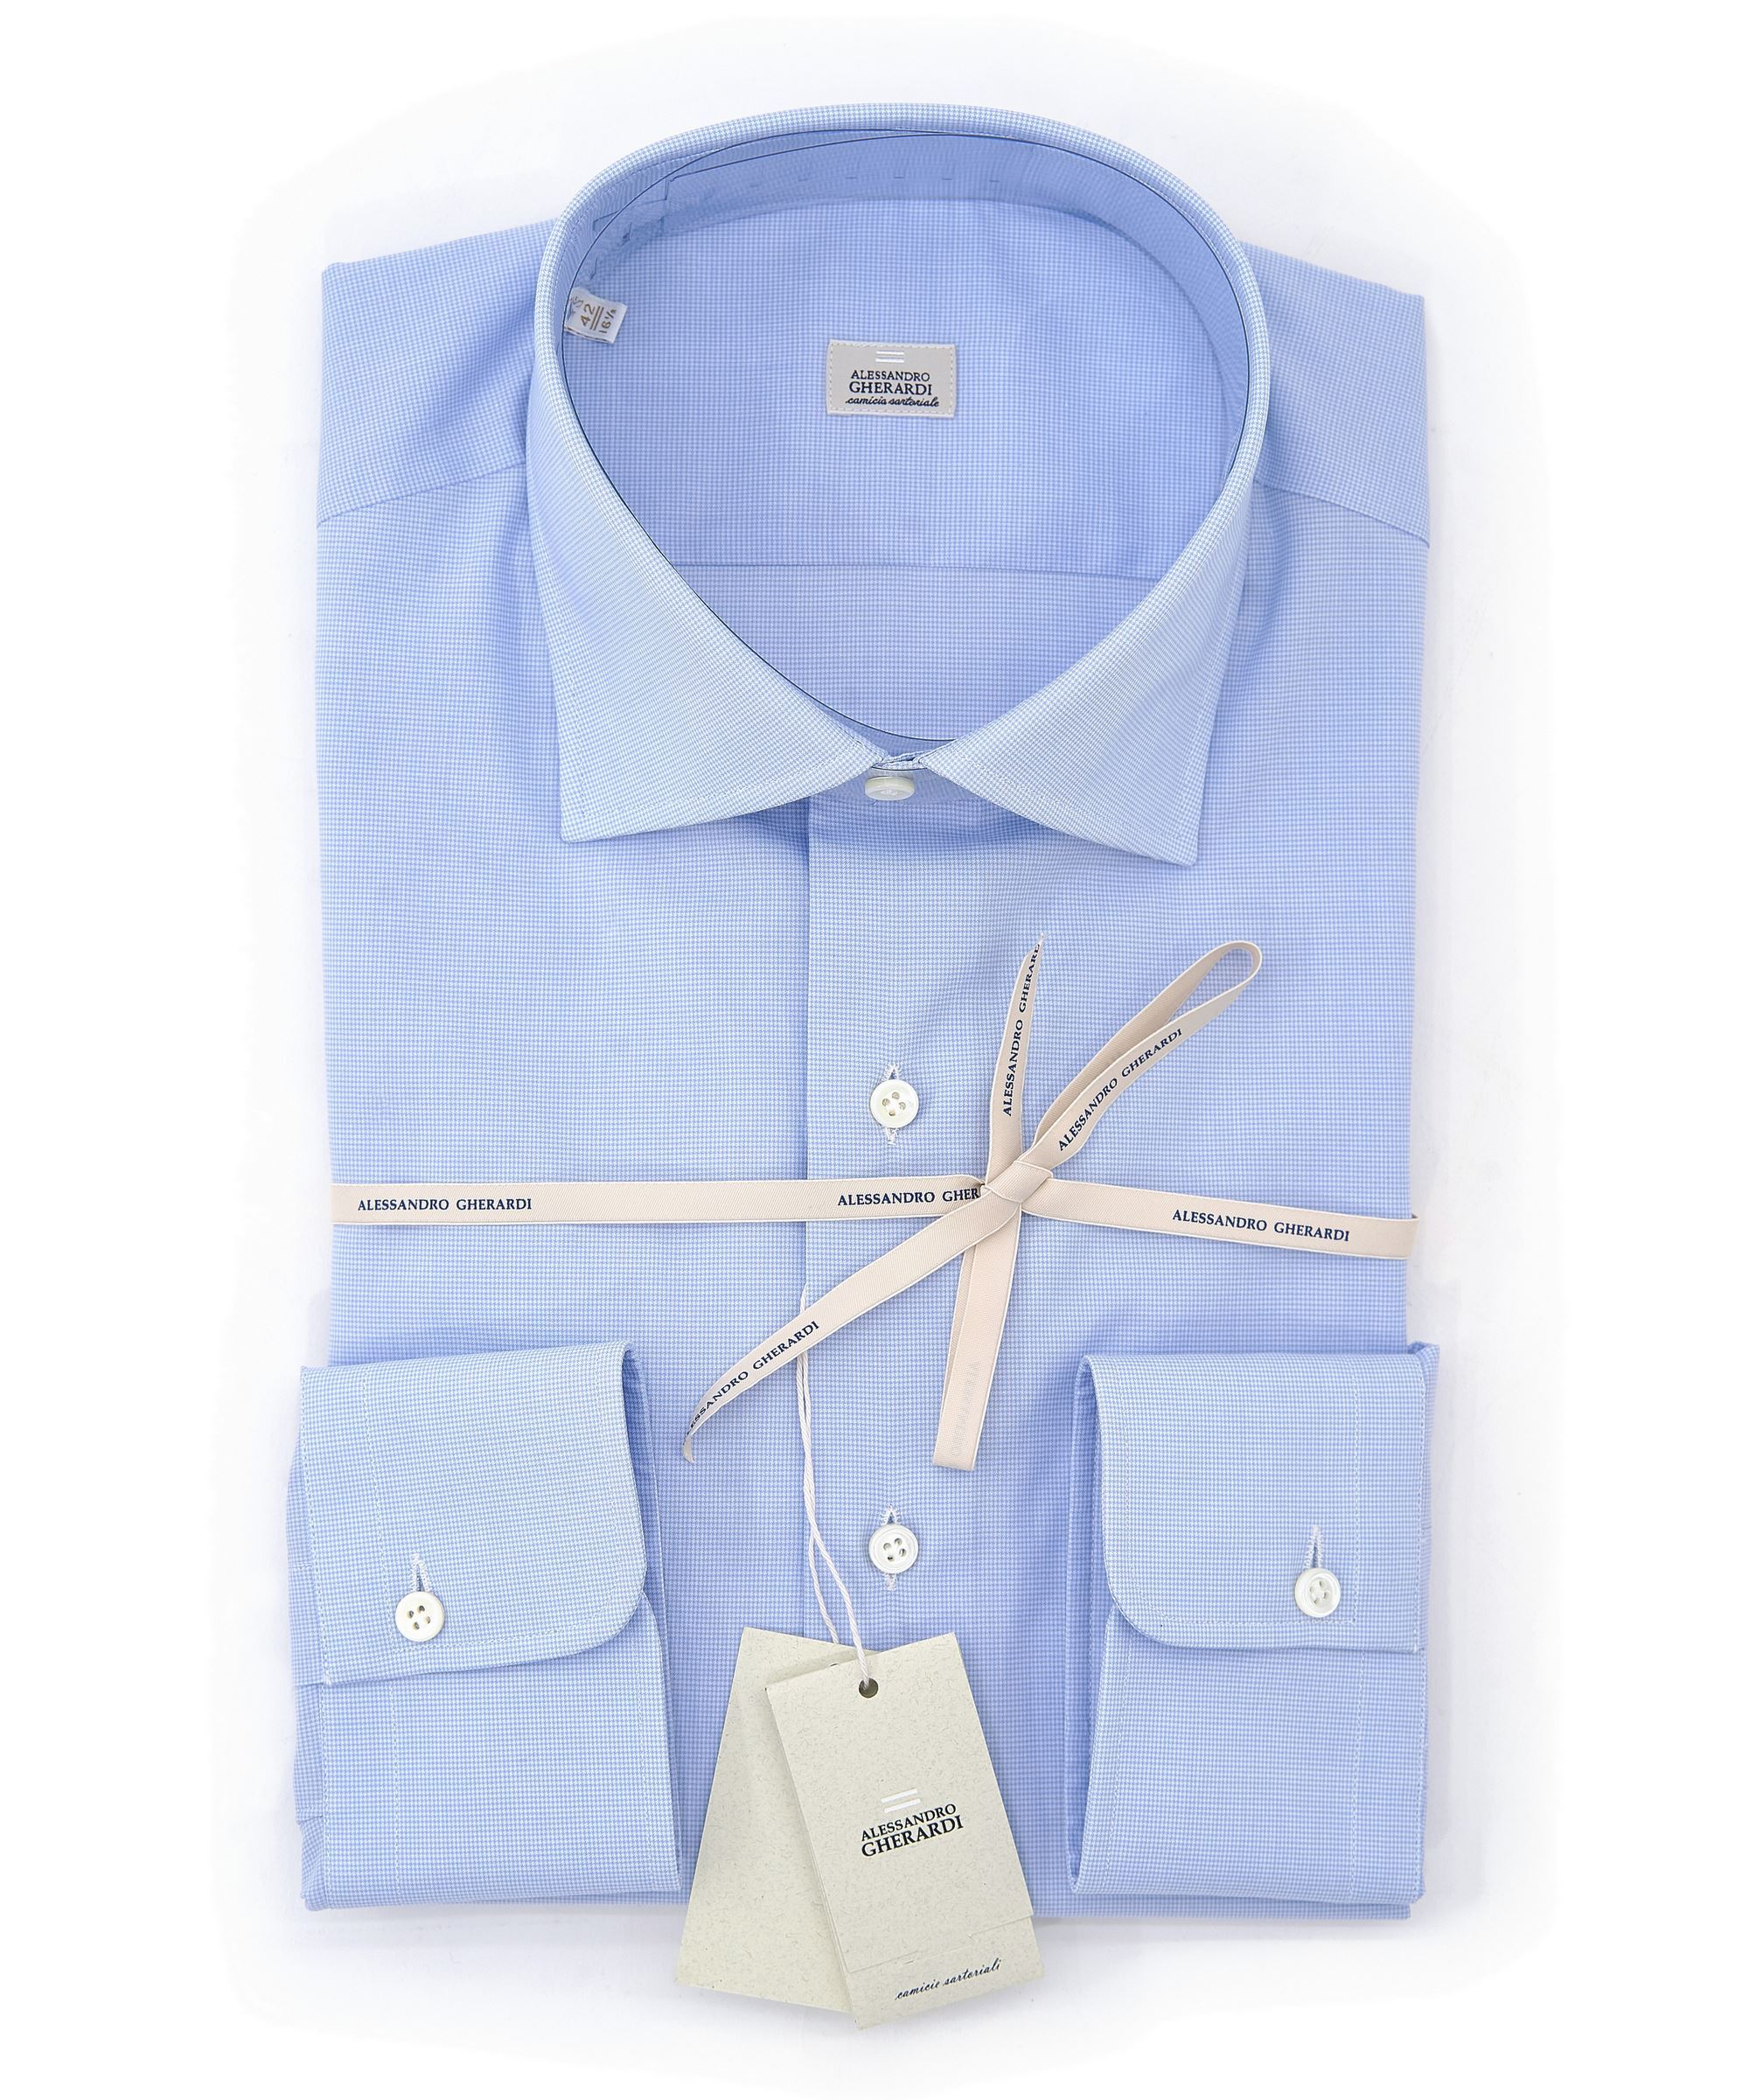 Picture of Micro pattern shirt with sky blue background